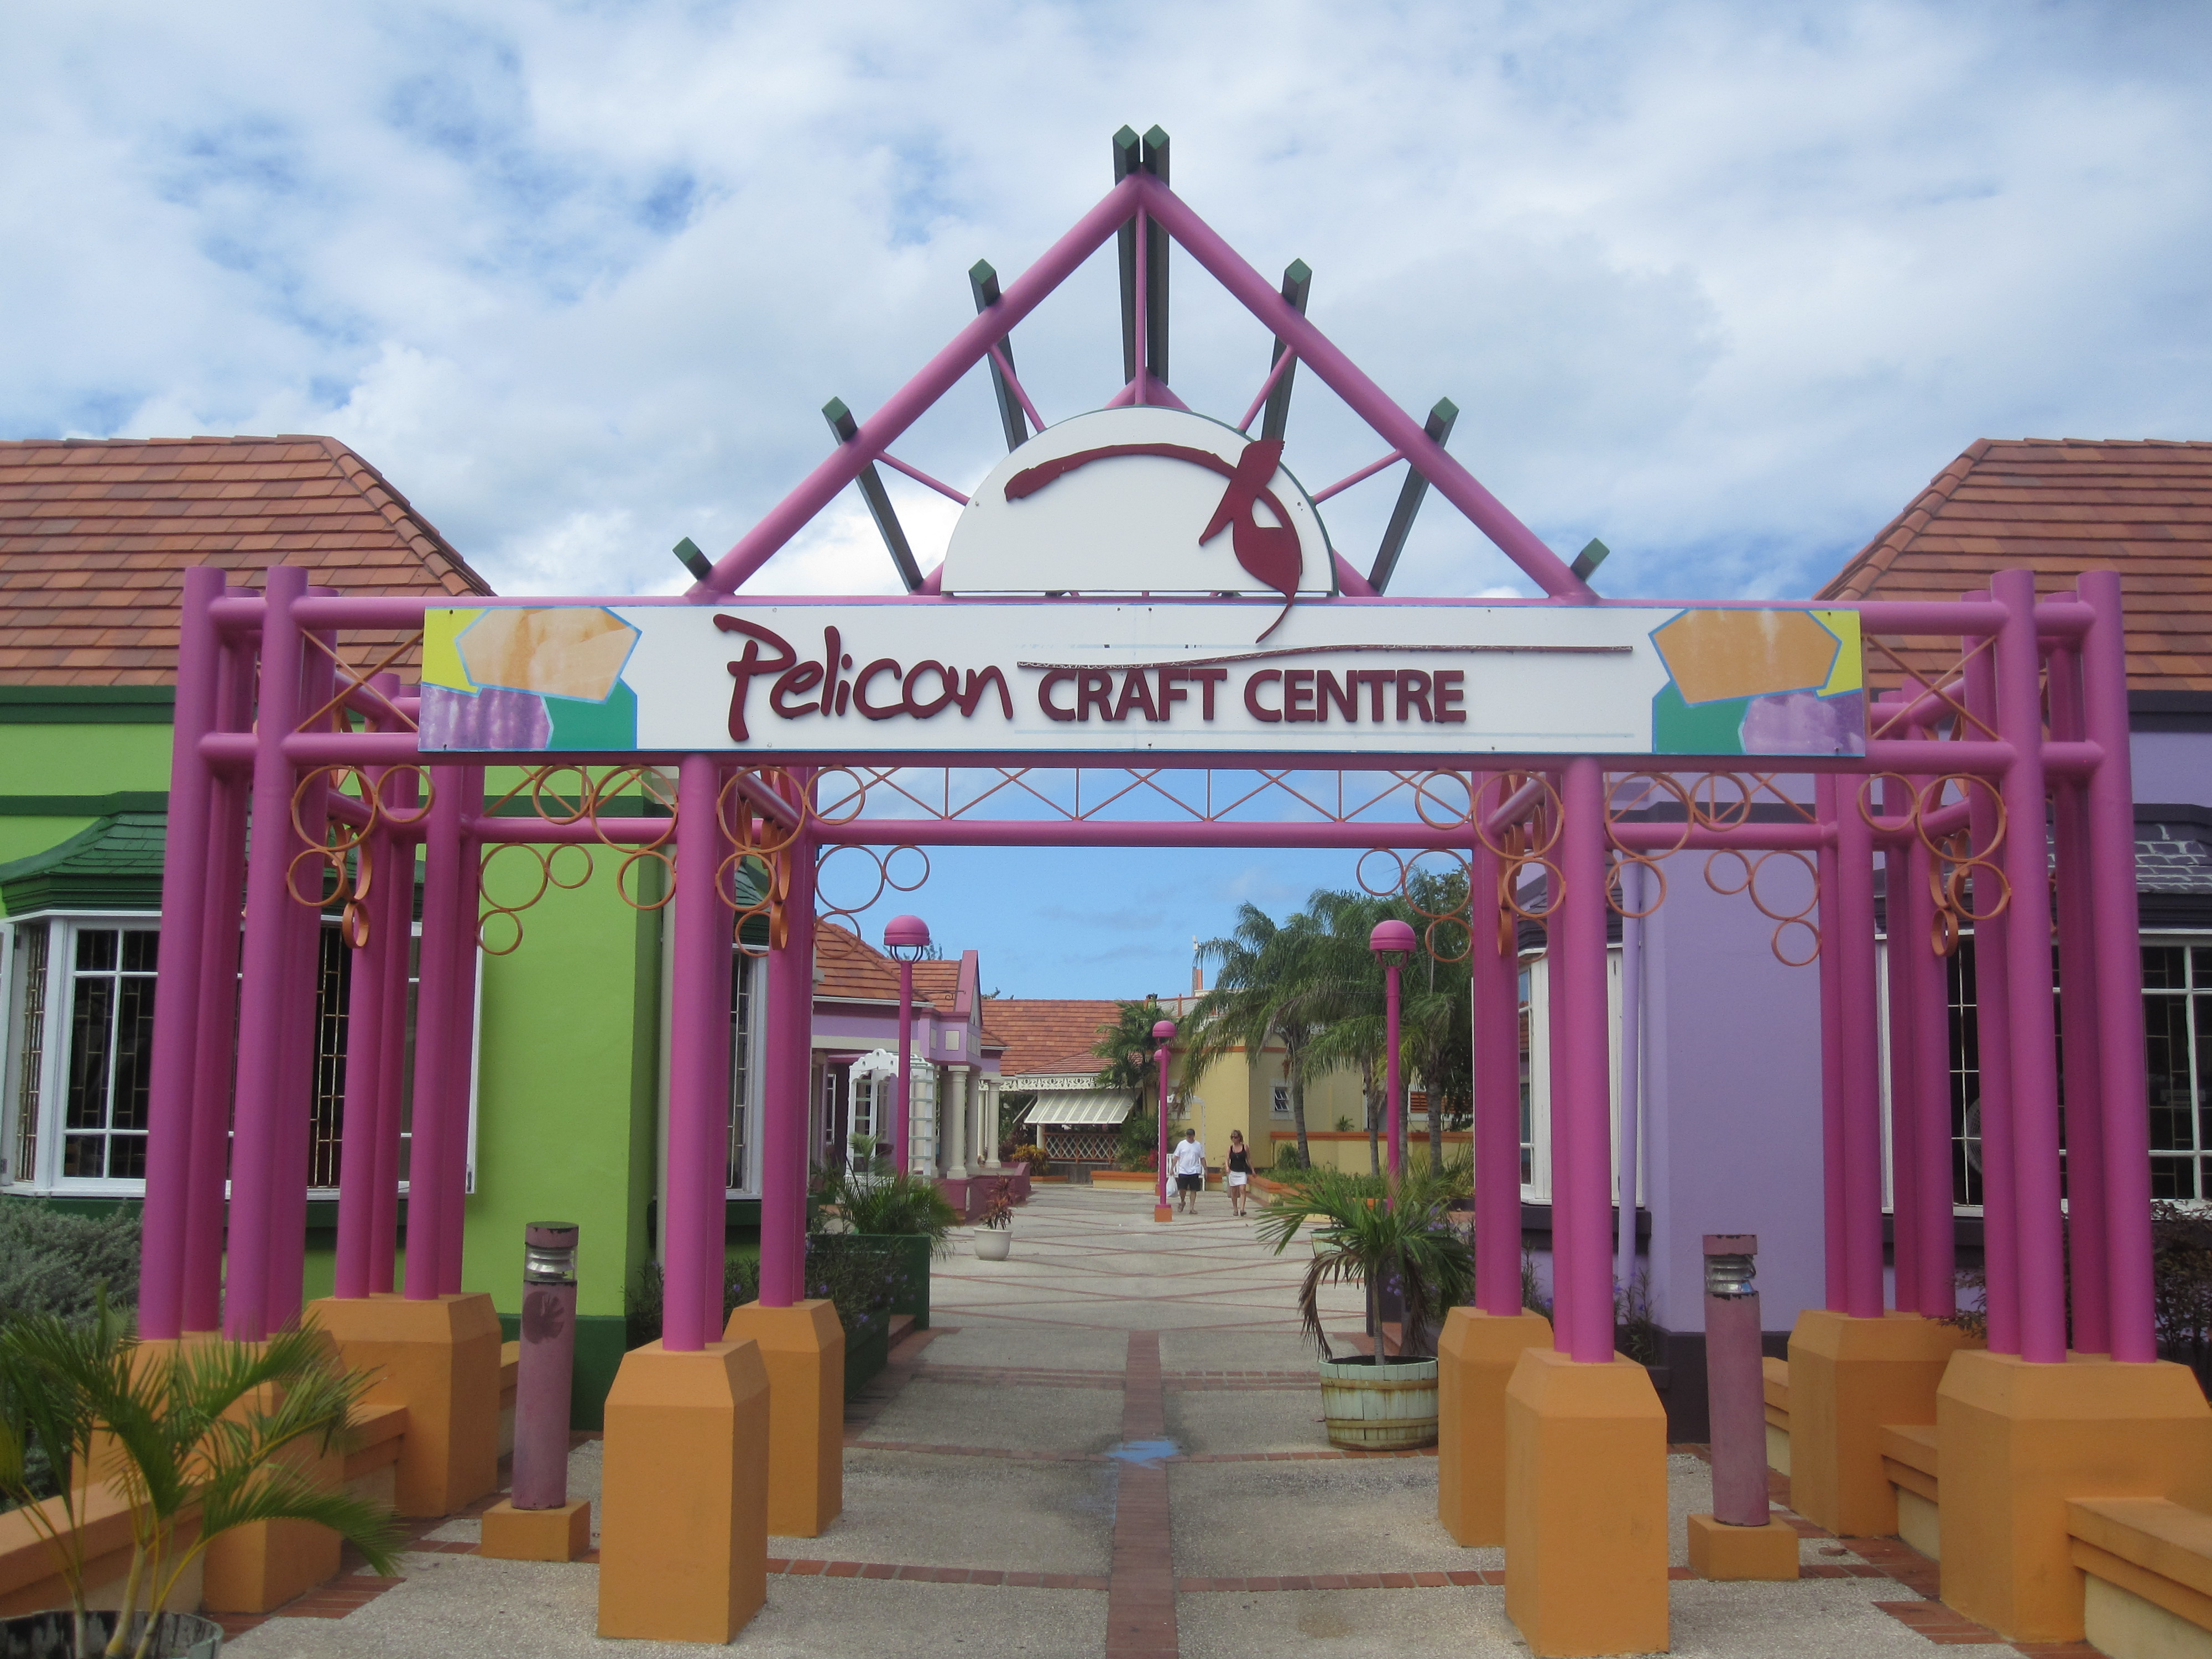 Pelican Craft Centre